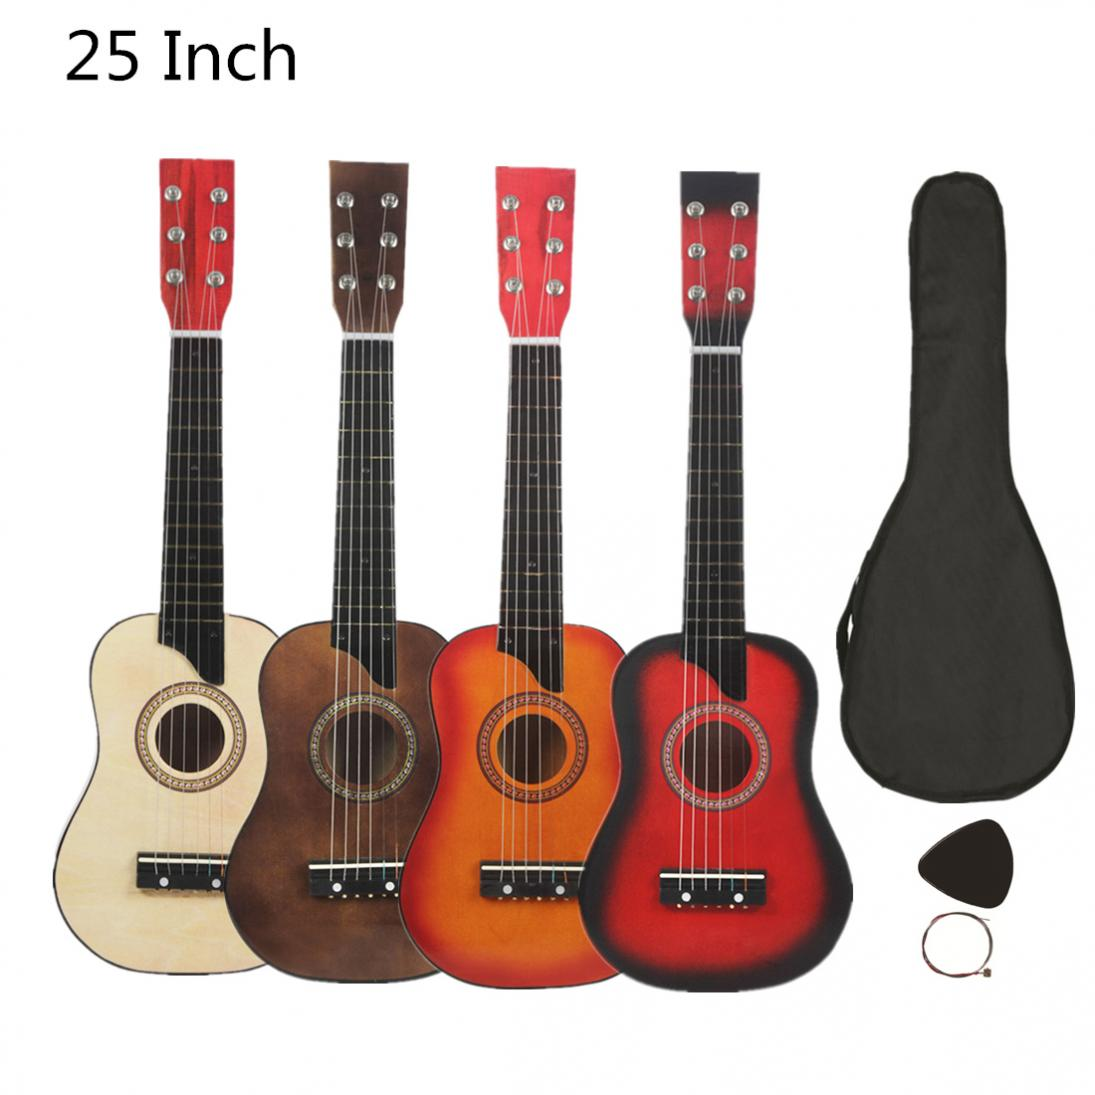 25 Inch Basswood Acoustic Guitar With Bag Pick Strings Gift For Children And Beginner Musical Instrument 4 Colors Optional